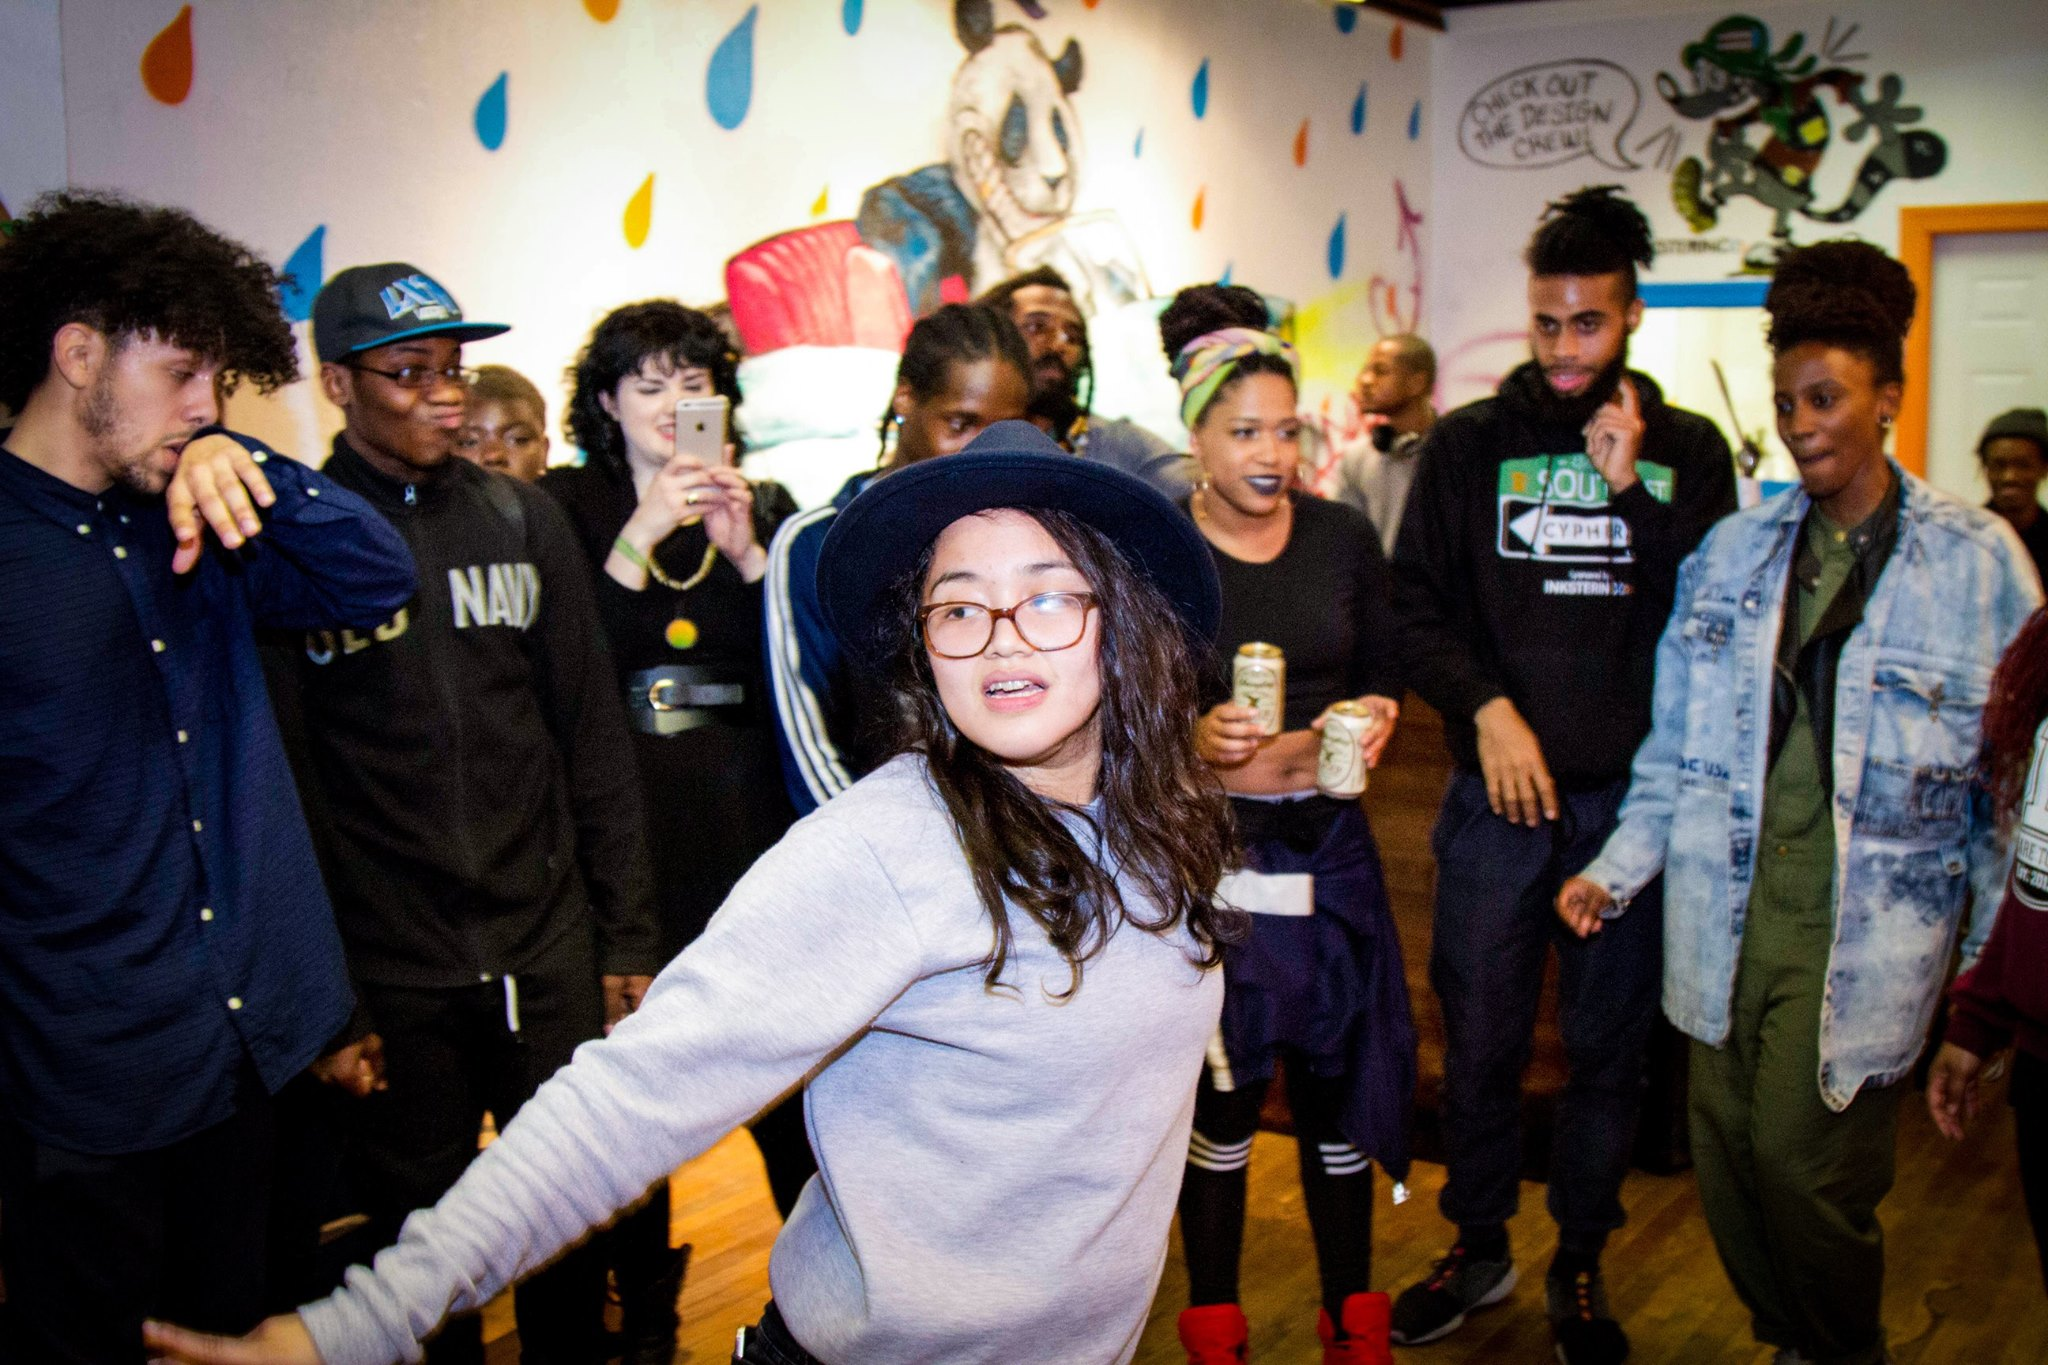 Bea freestyling at Elebration Philly  Photo by: Saeed Briscoe